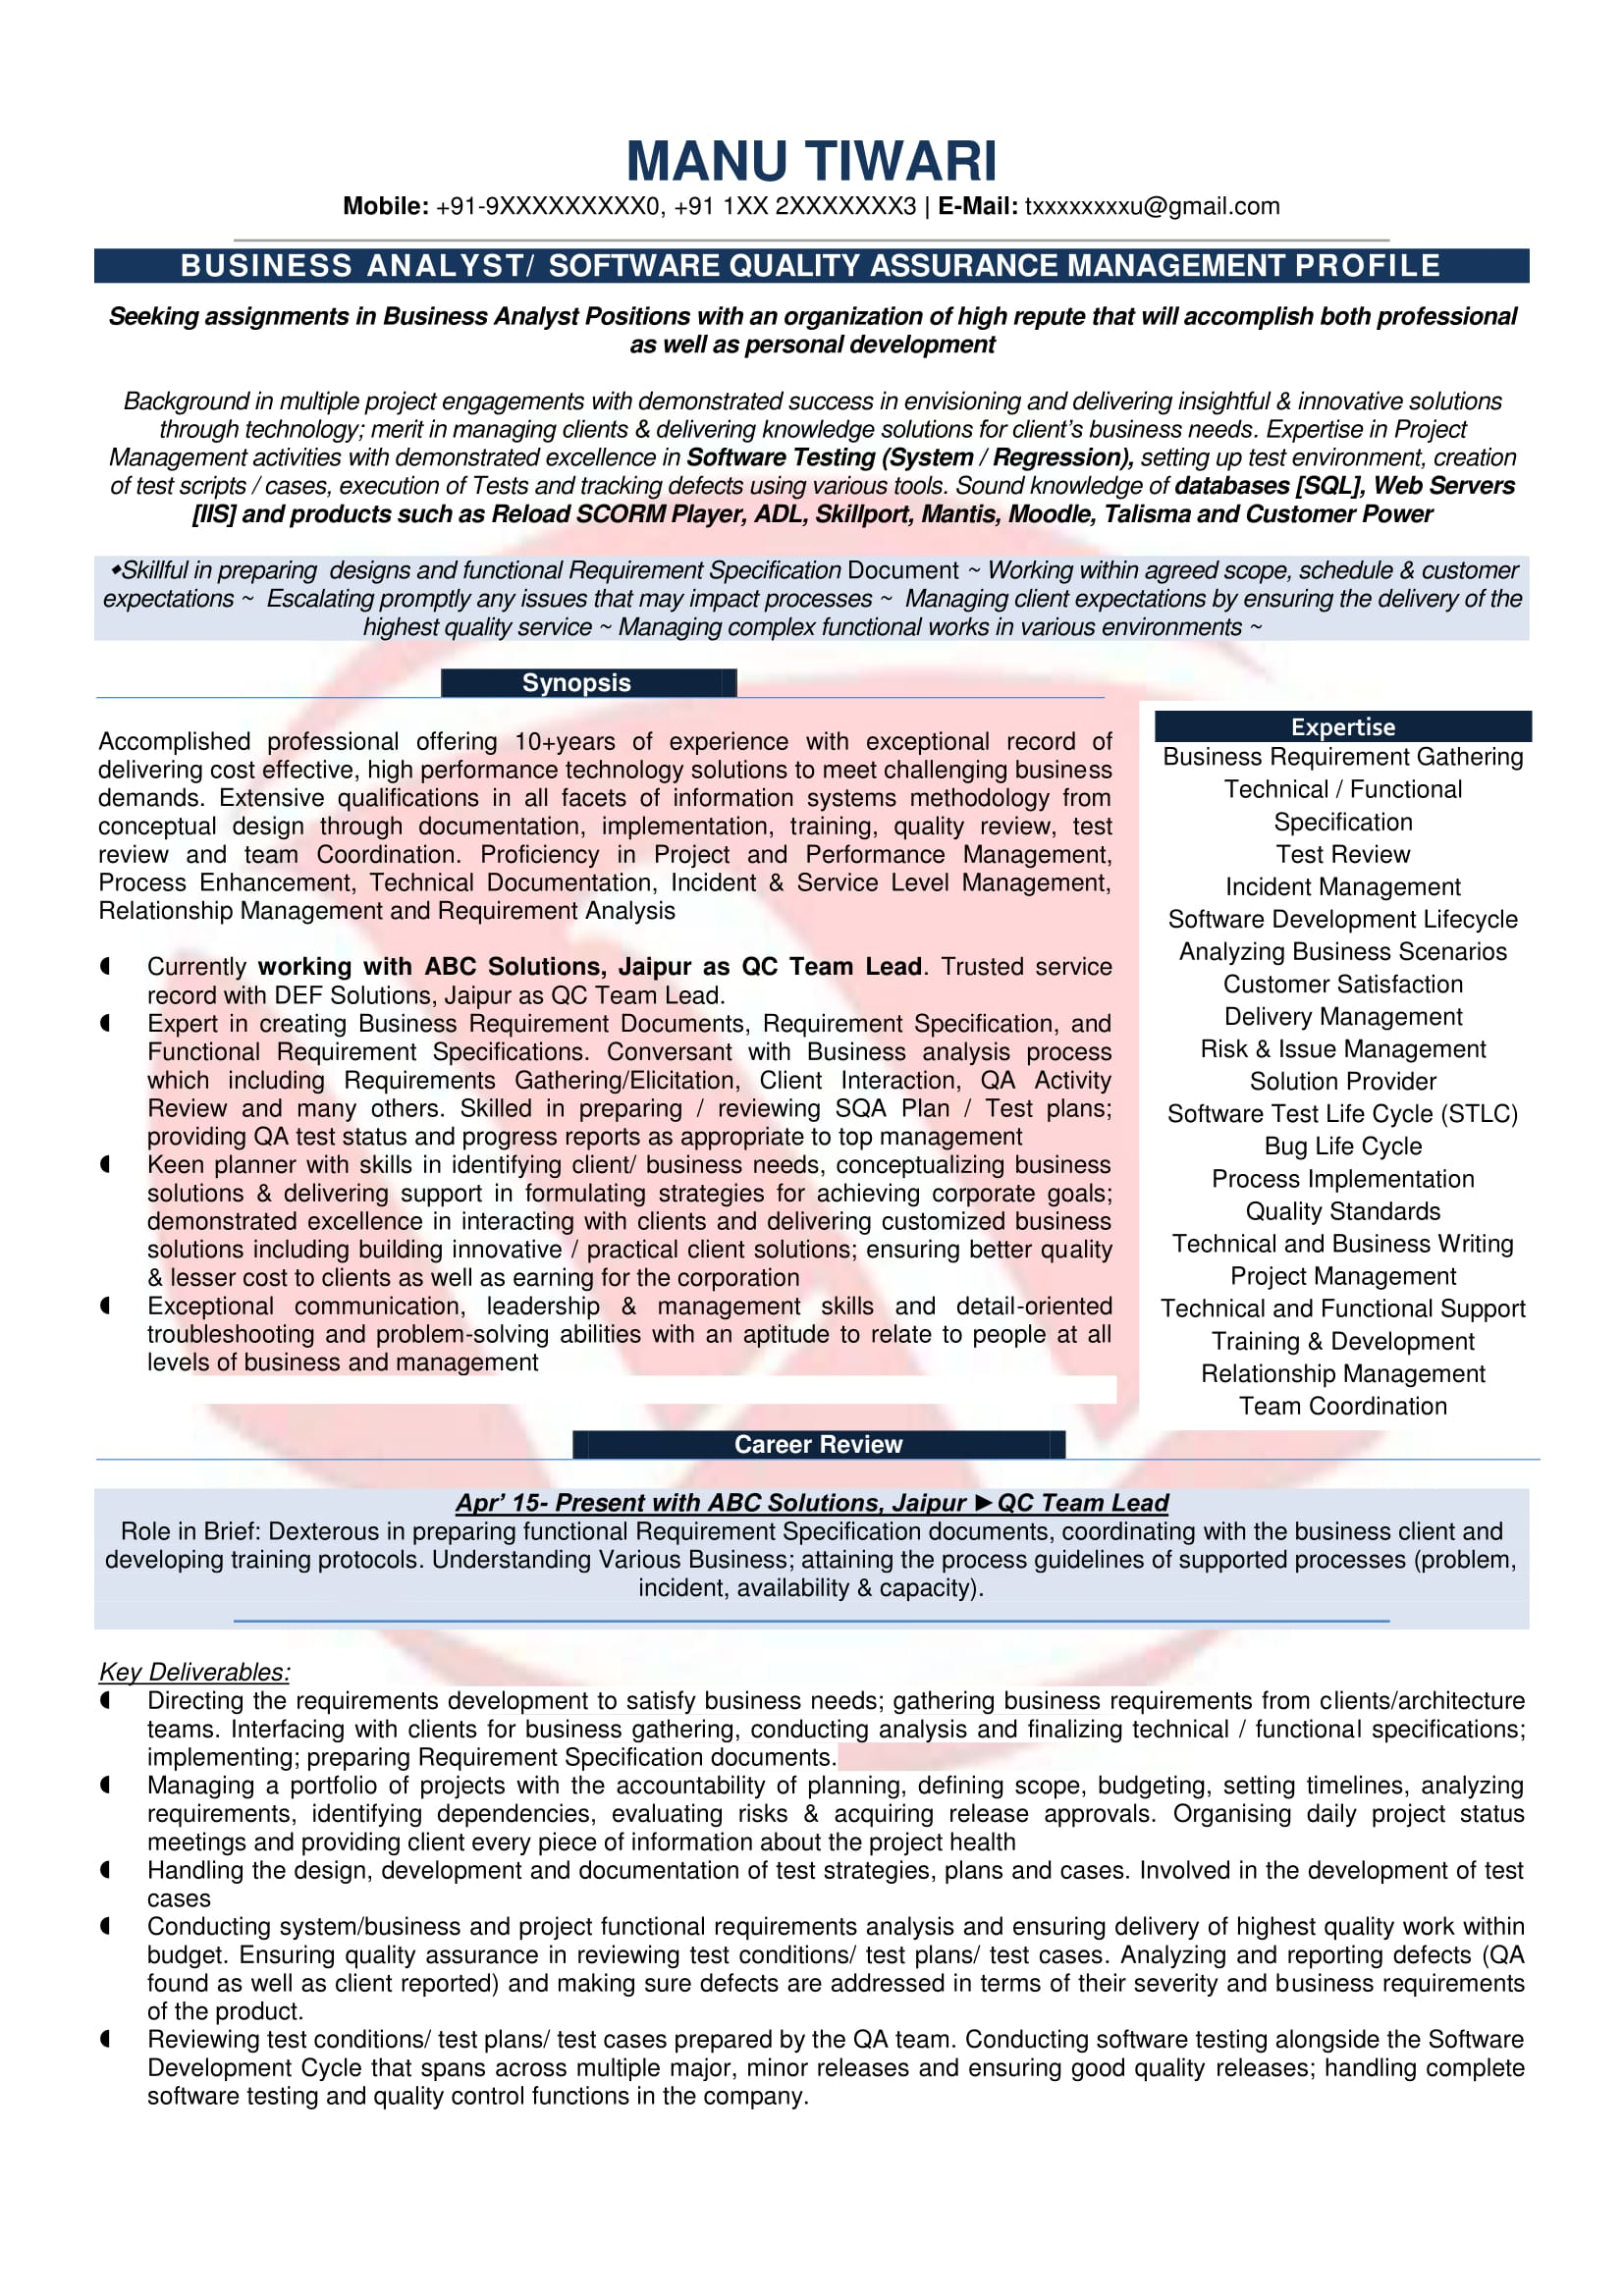 business analyst sample resumes agile resume fidelity investments rpi template accounting Resume Business Analyst Agile Resume Sample